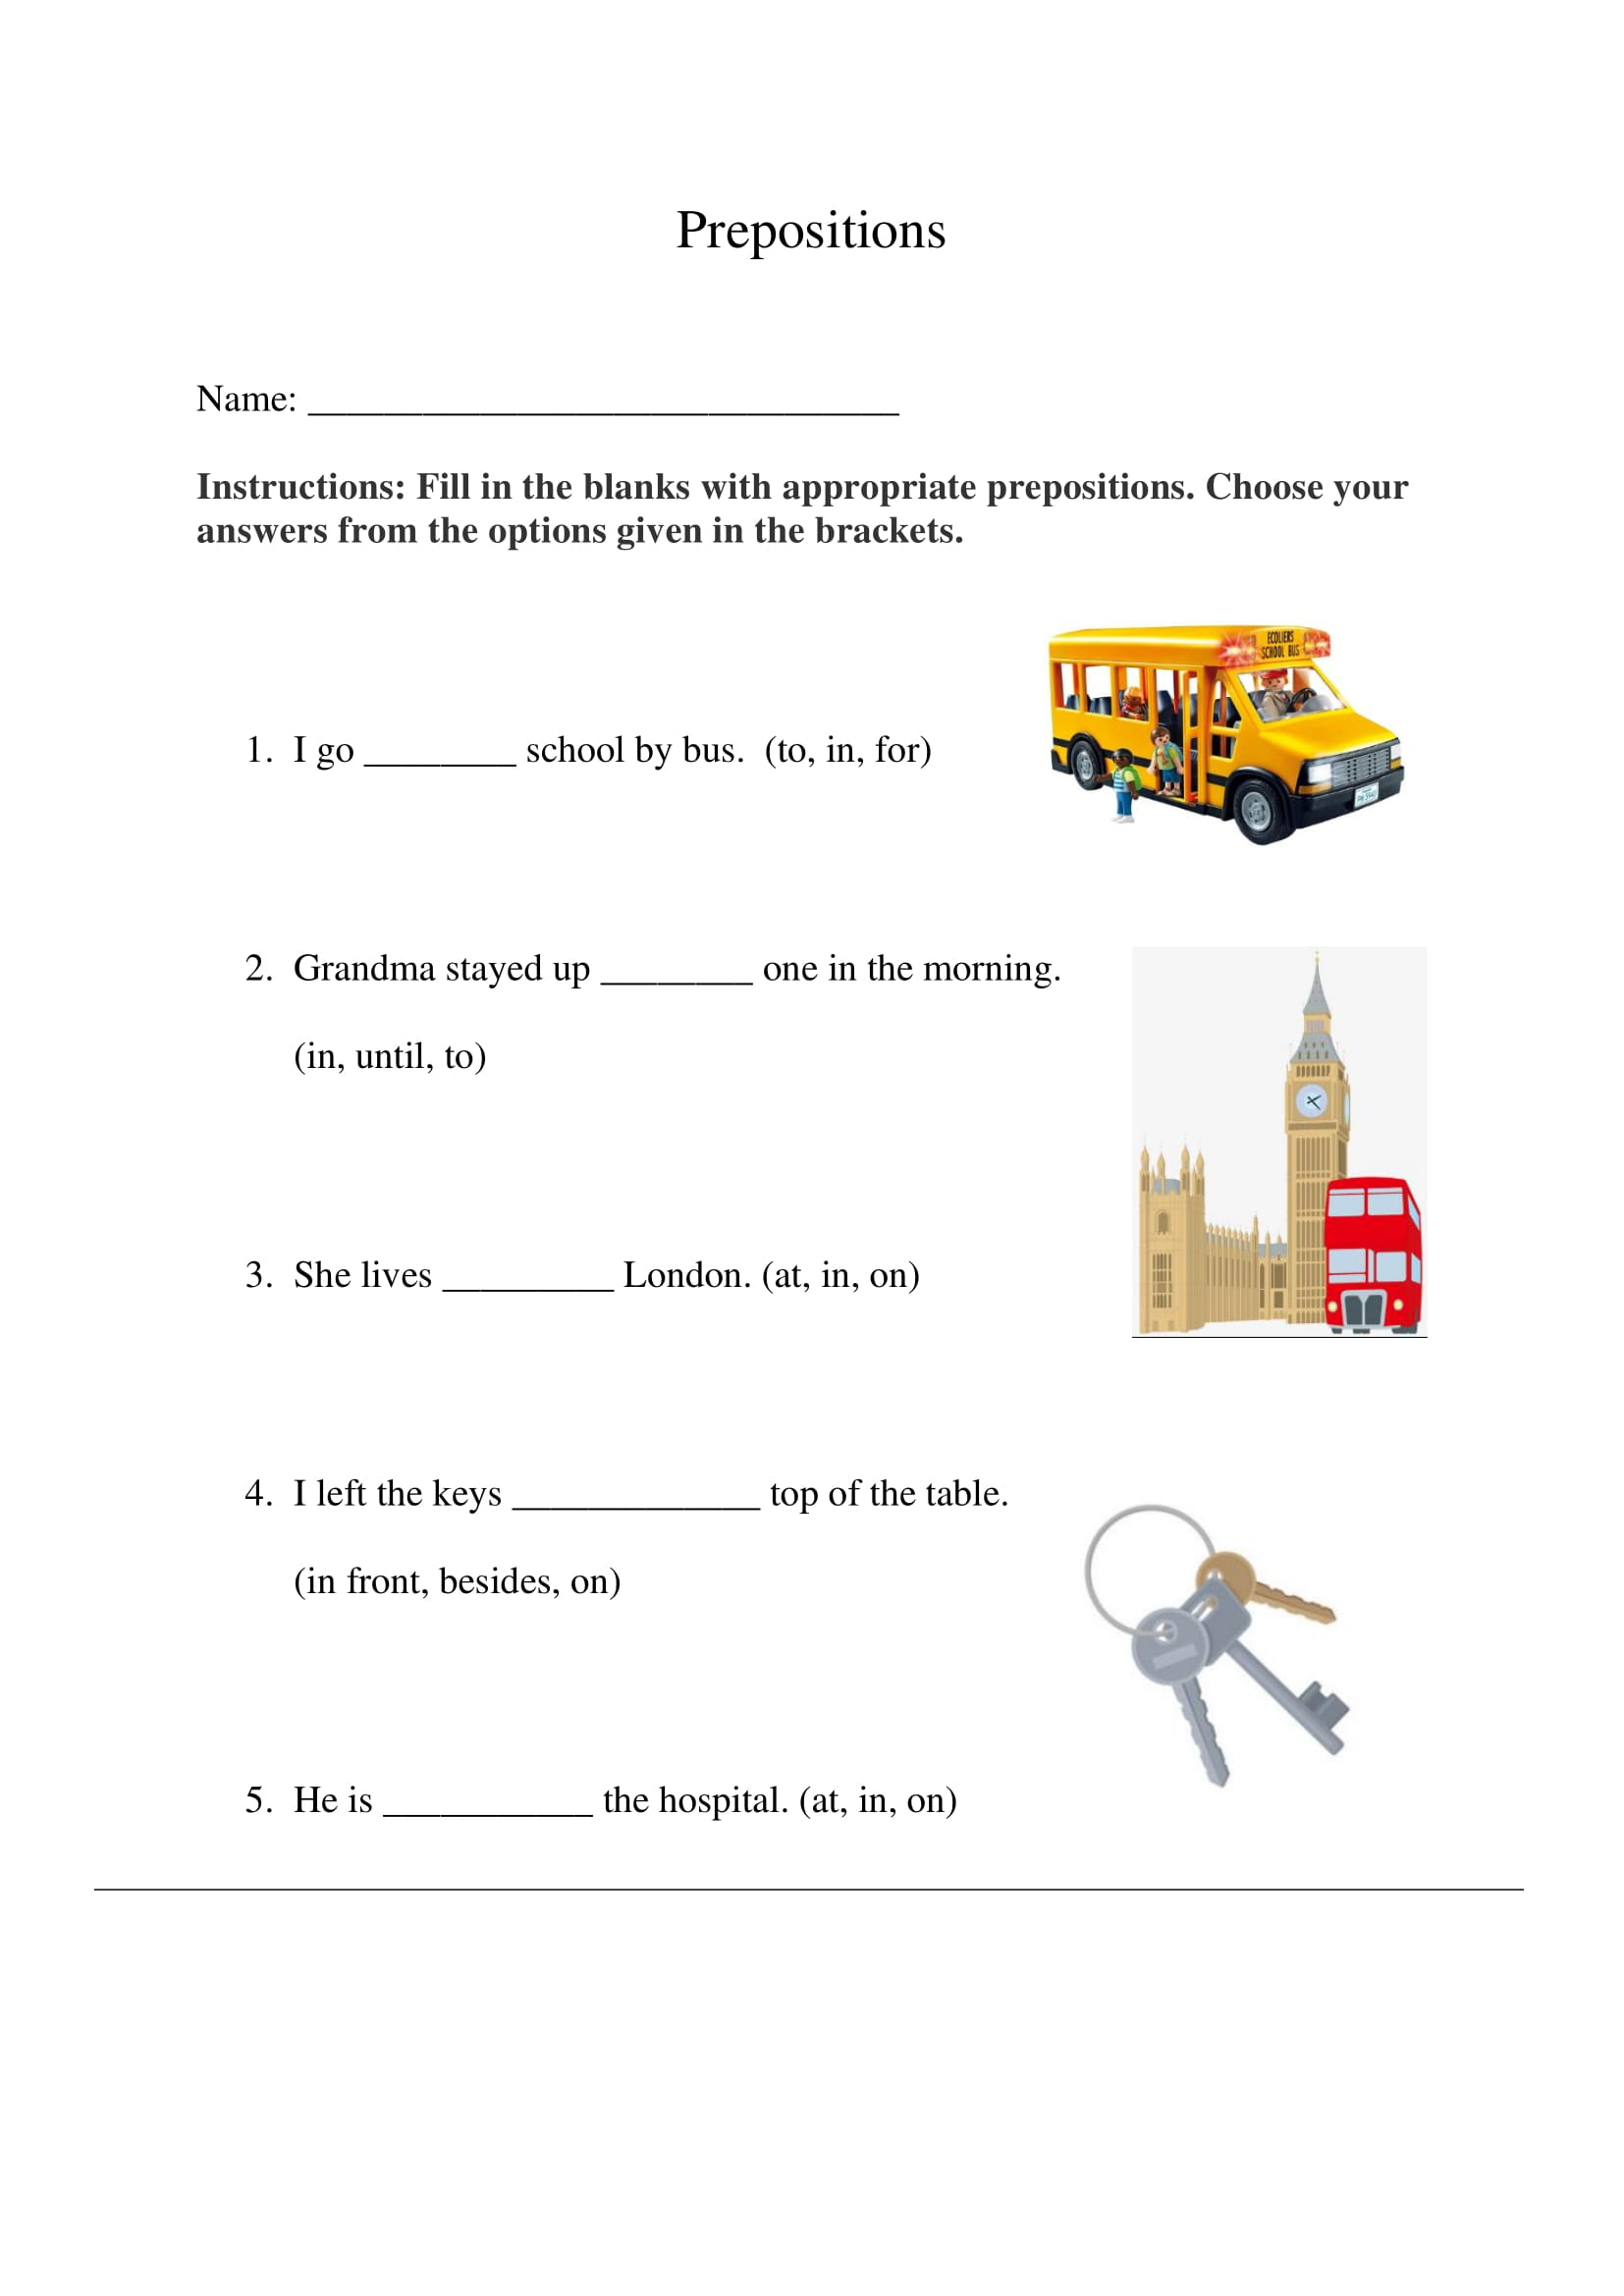 Prepositions Exercise 1